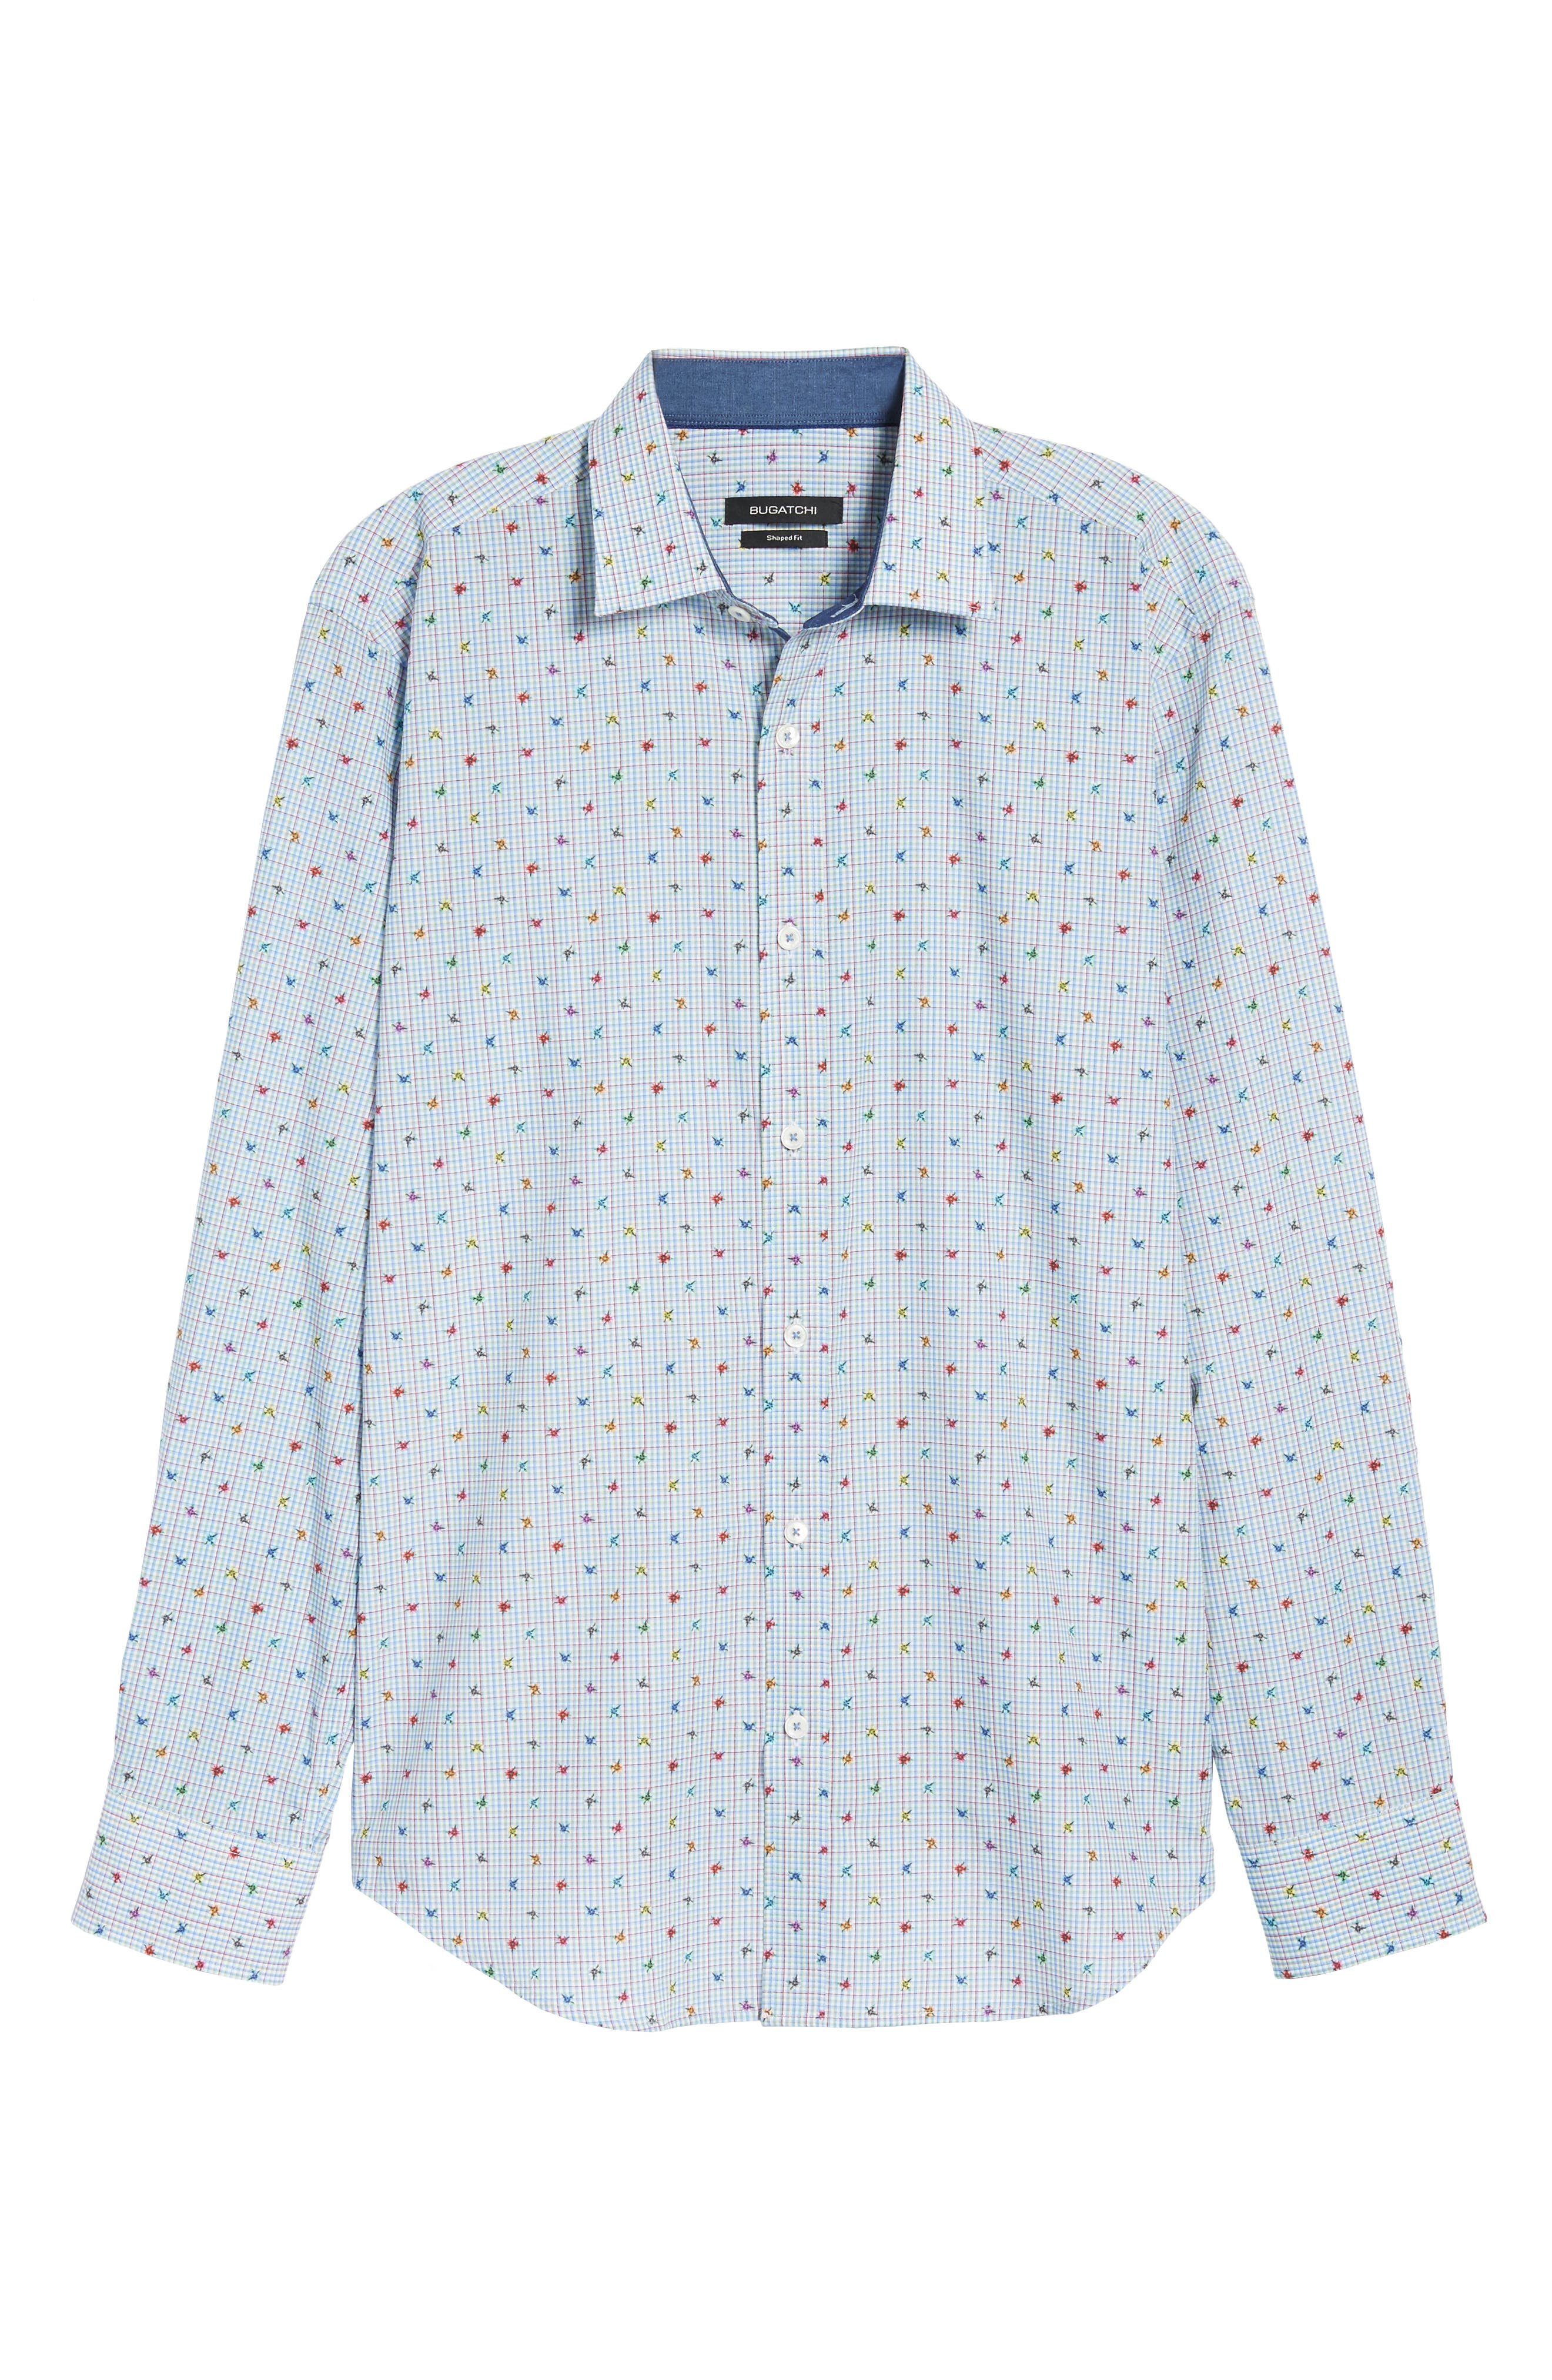 Shaped Fit Floral Check Sport Shirt,                             Alternate thumbnail 6, color,                             Candy